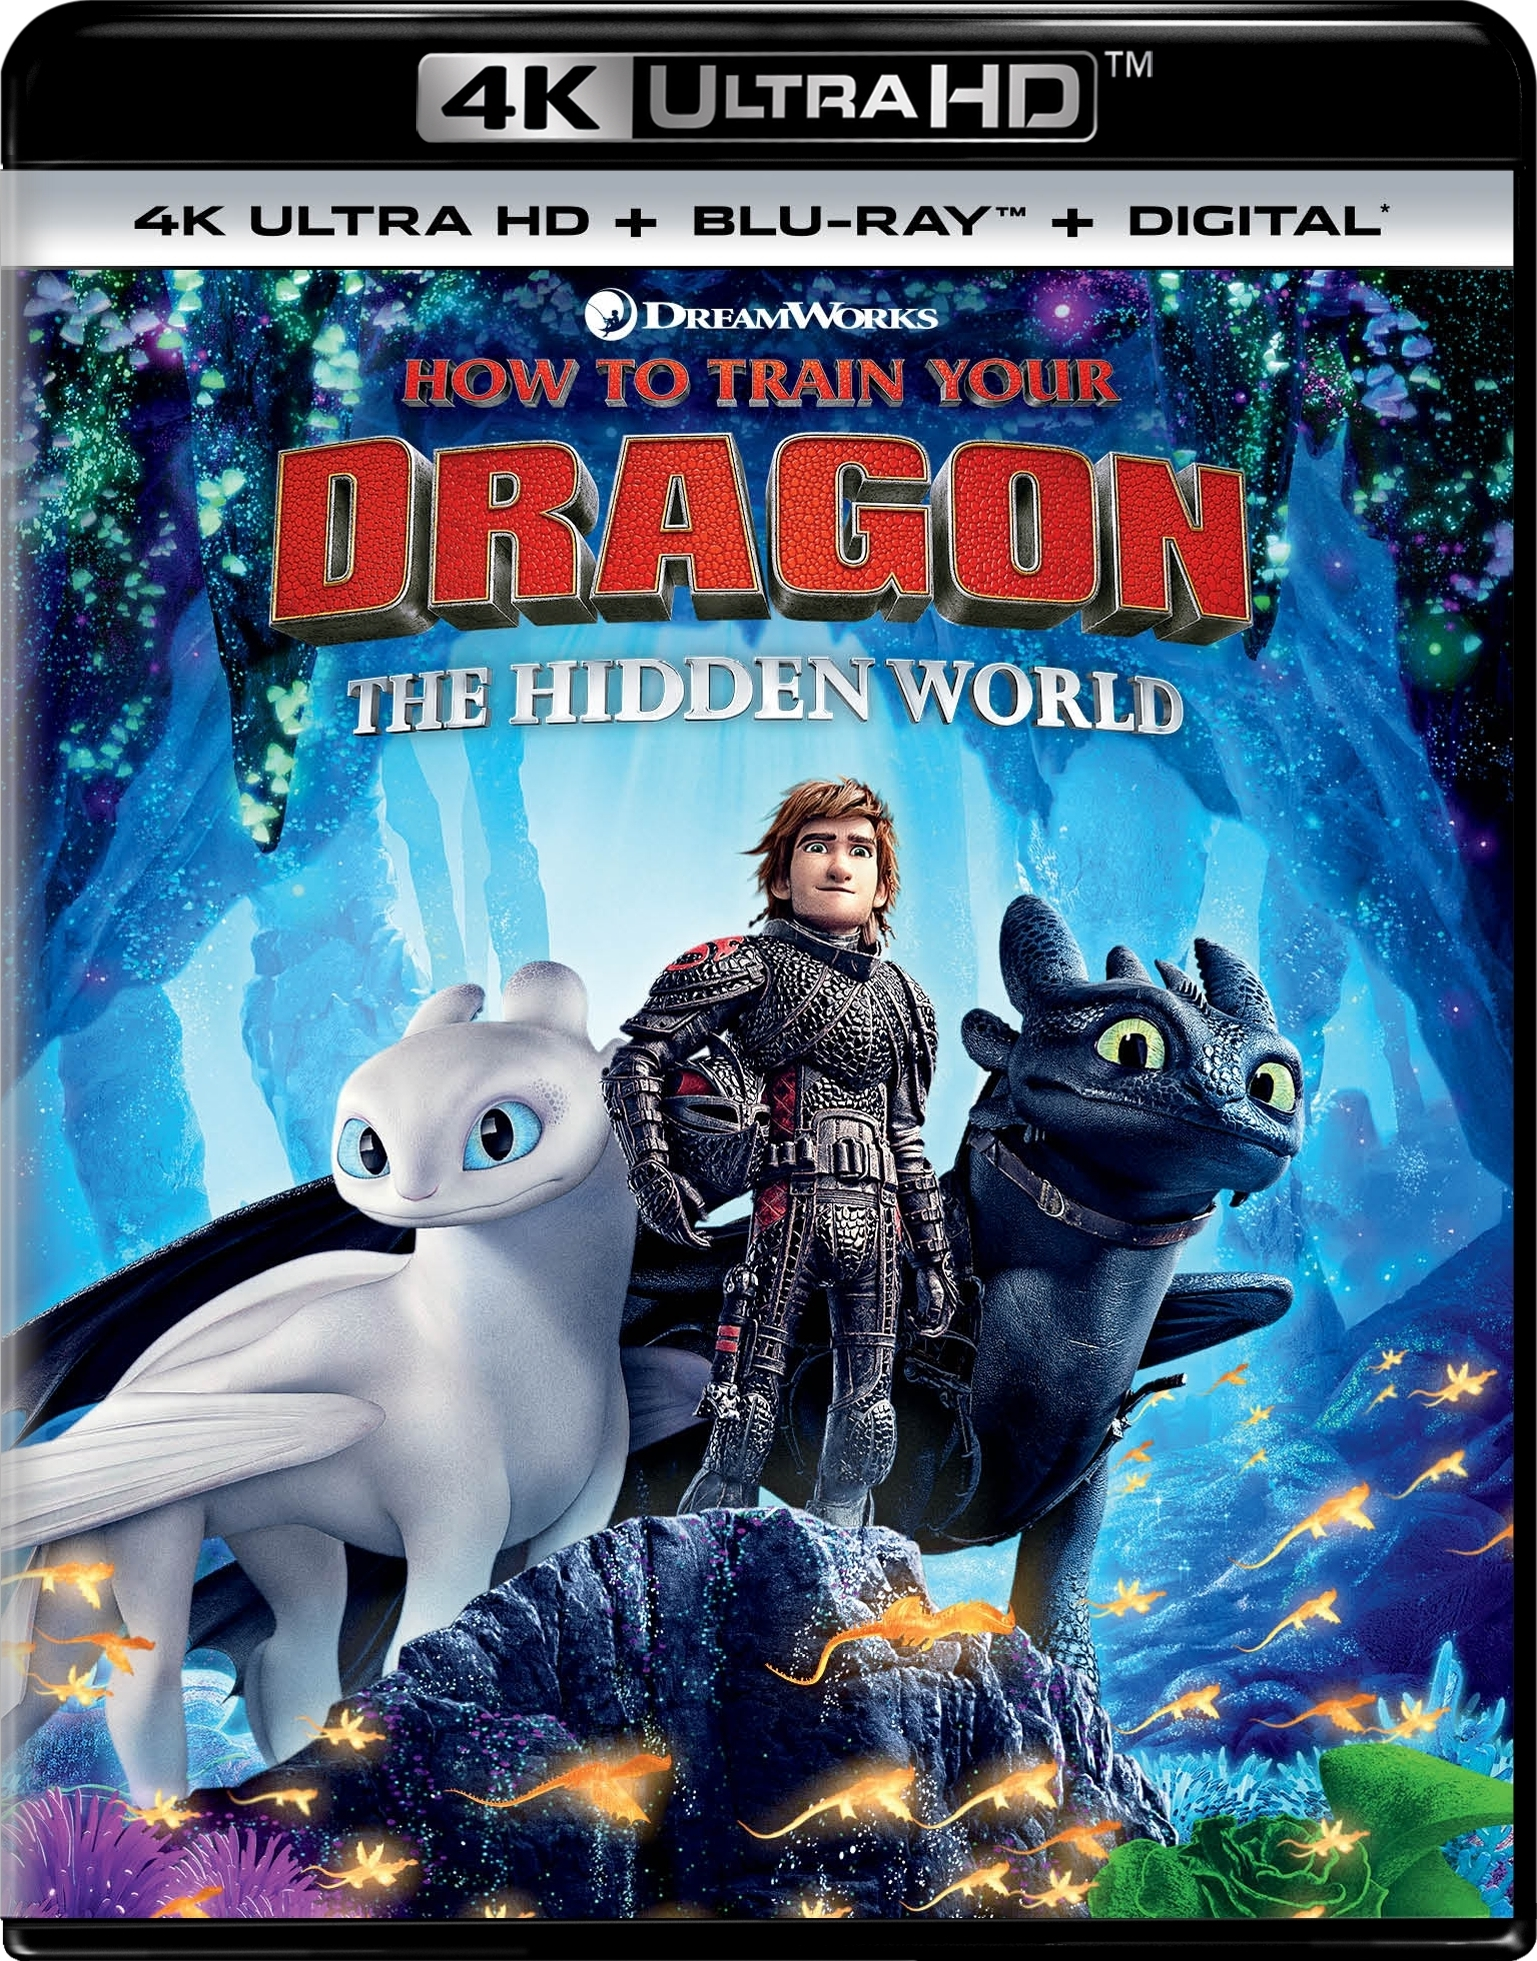 How to Train Your Dragon 3: The Hidden World (4K Ultra HD Blu-ray)(Pre-order / May 21)